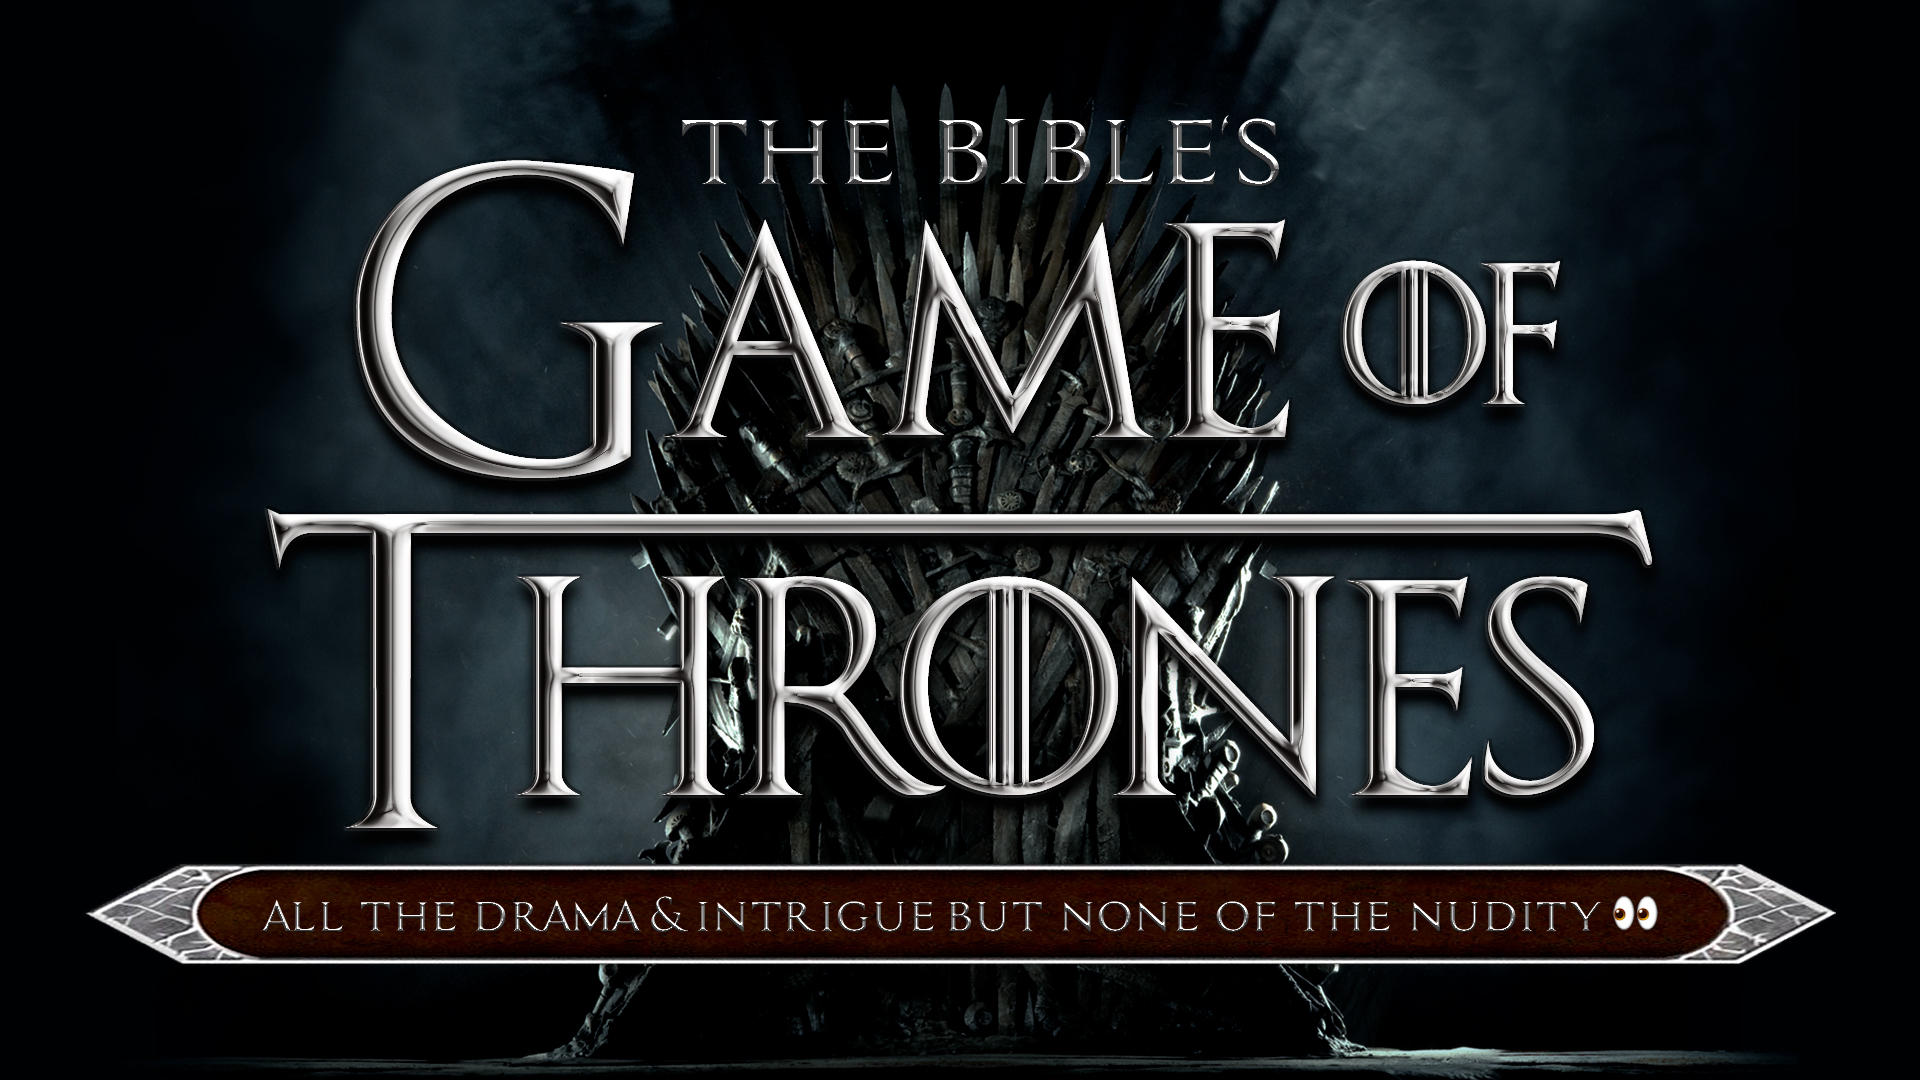 The Bible's Game Of Thrones